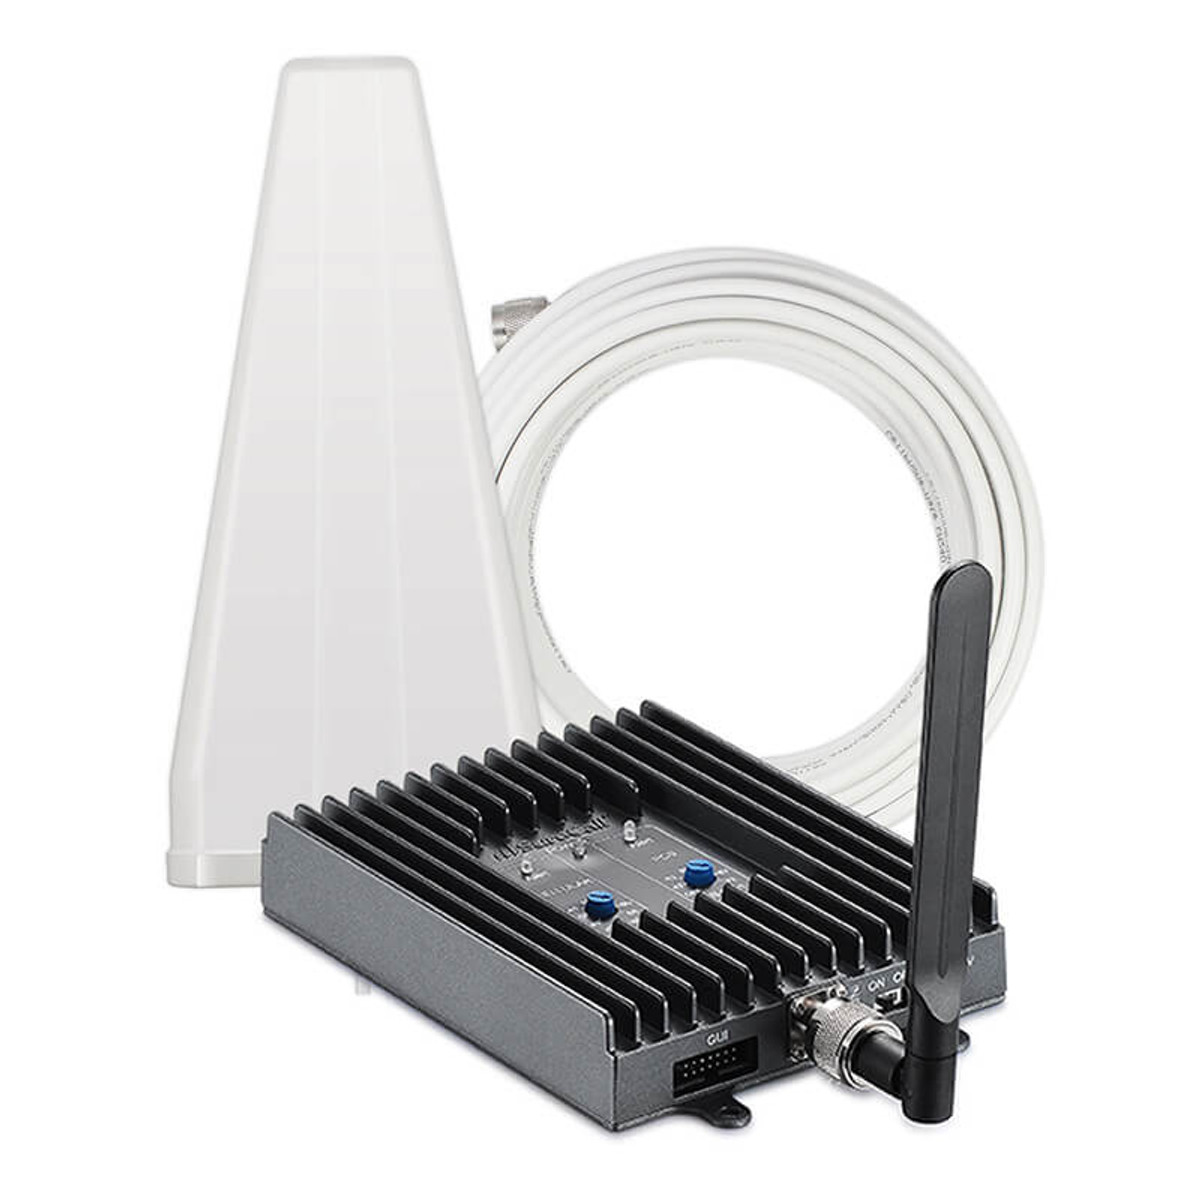 SureCall FlexPro 3G Signal Booster with Yagi & Whip Antennas | Kit